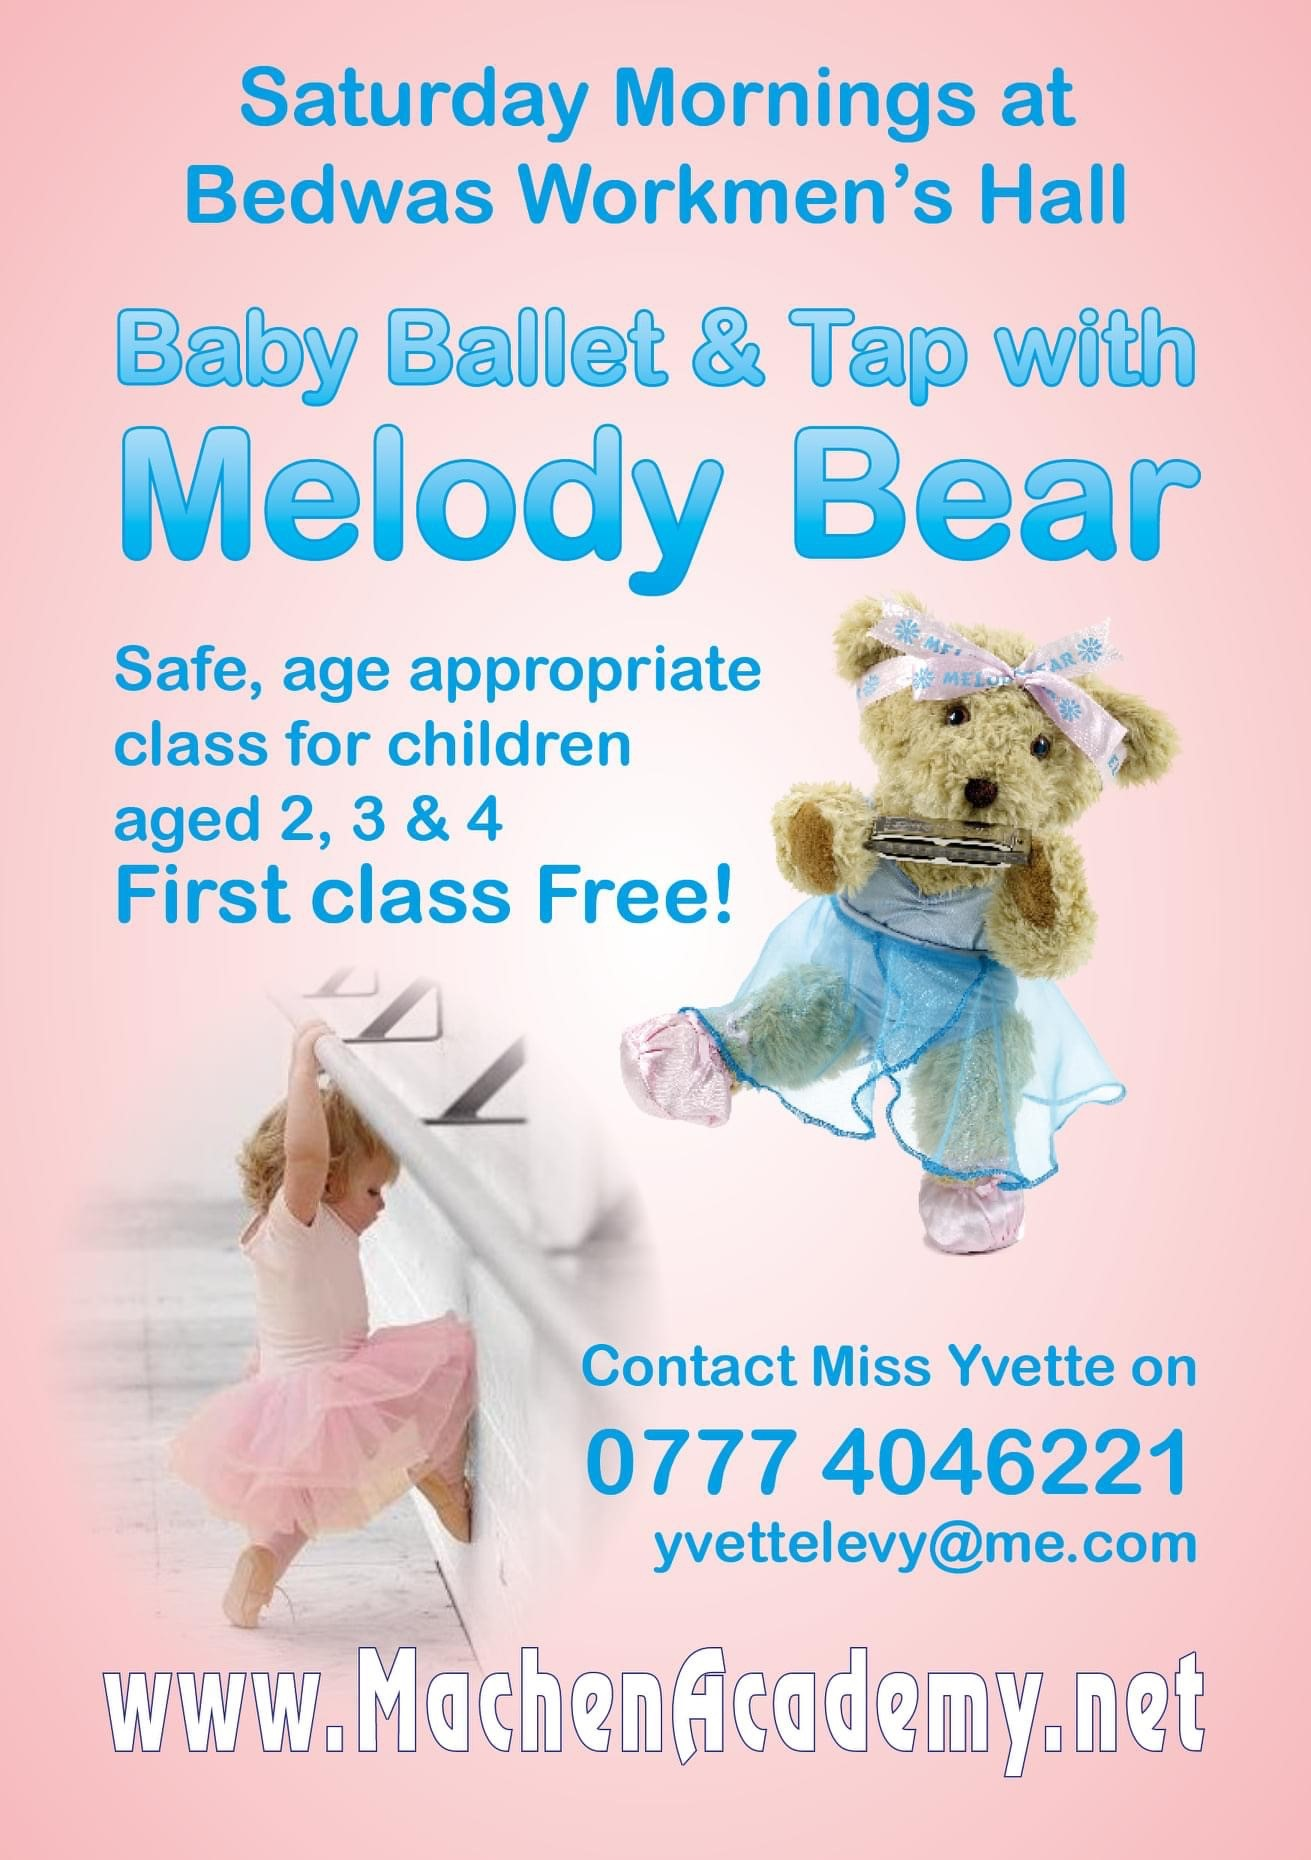 Melody Bear dance classes for toddlers at Bedwas Workmen's Hall